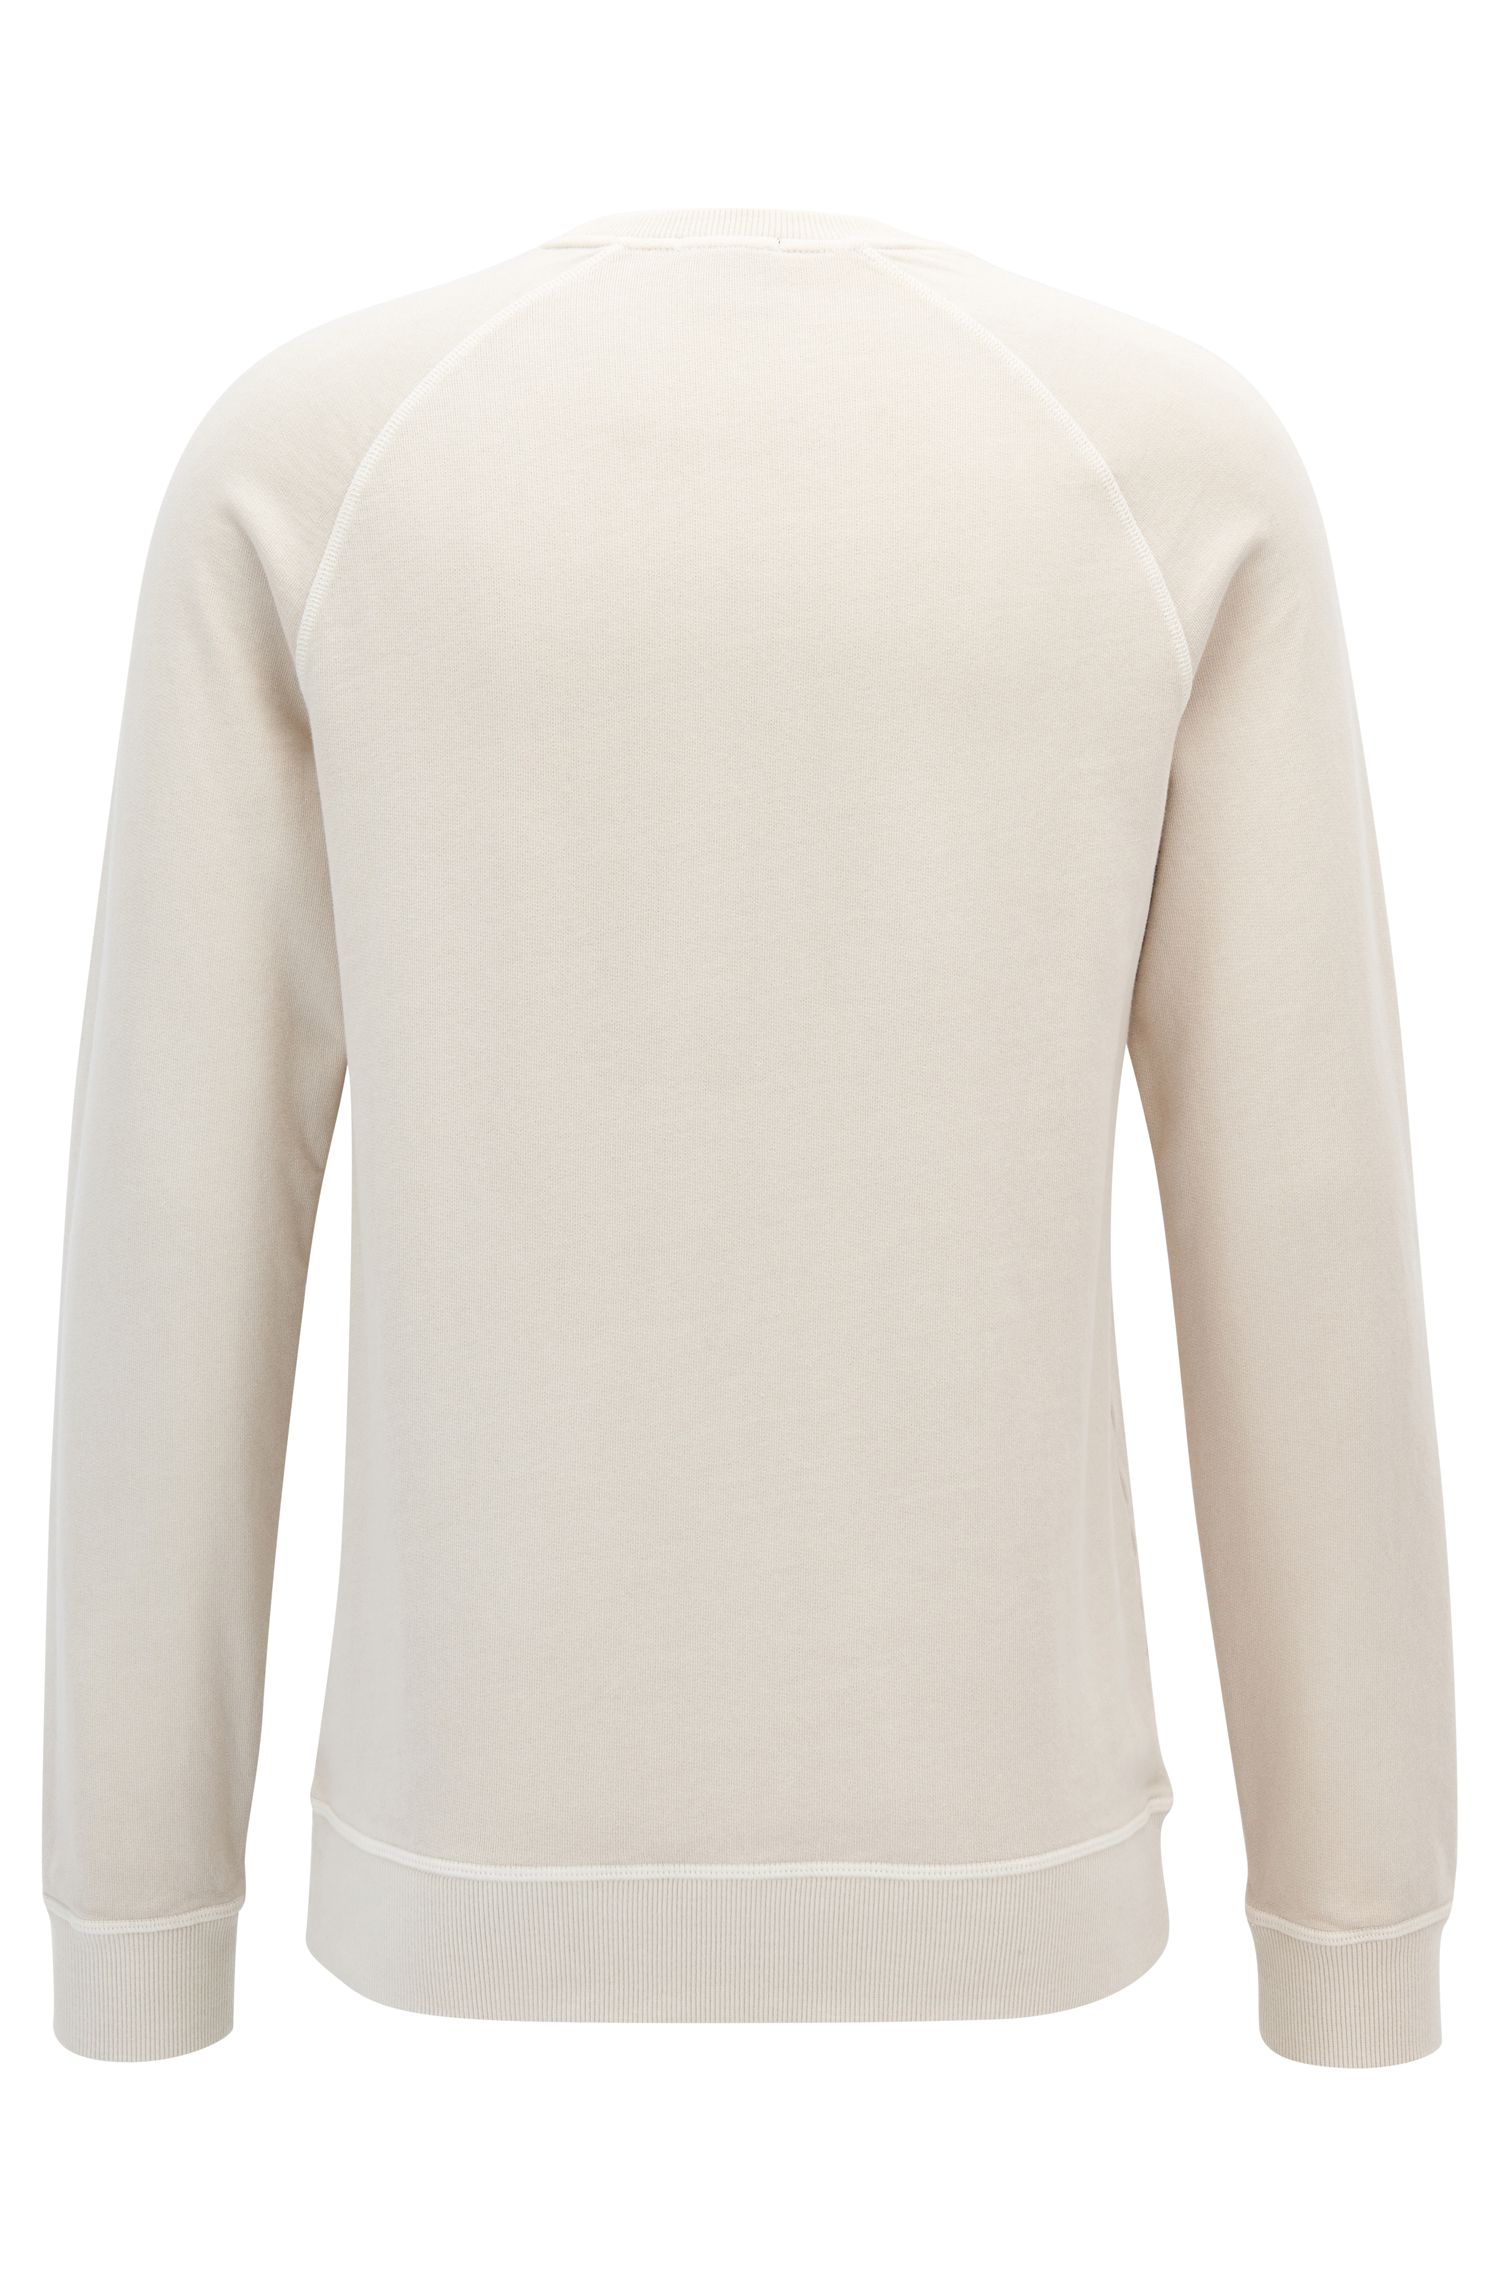 Cotton Sweatshirt | Skubic, Natural